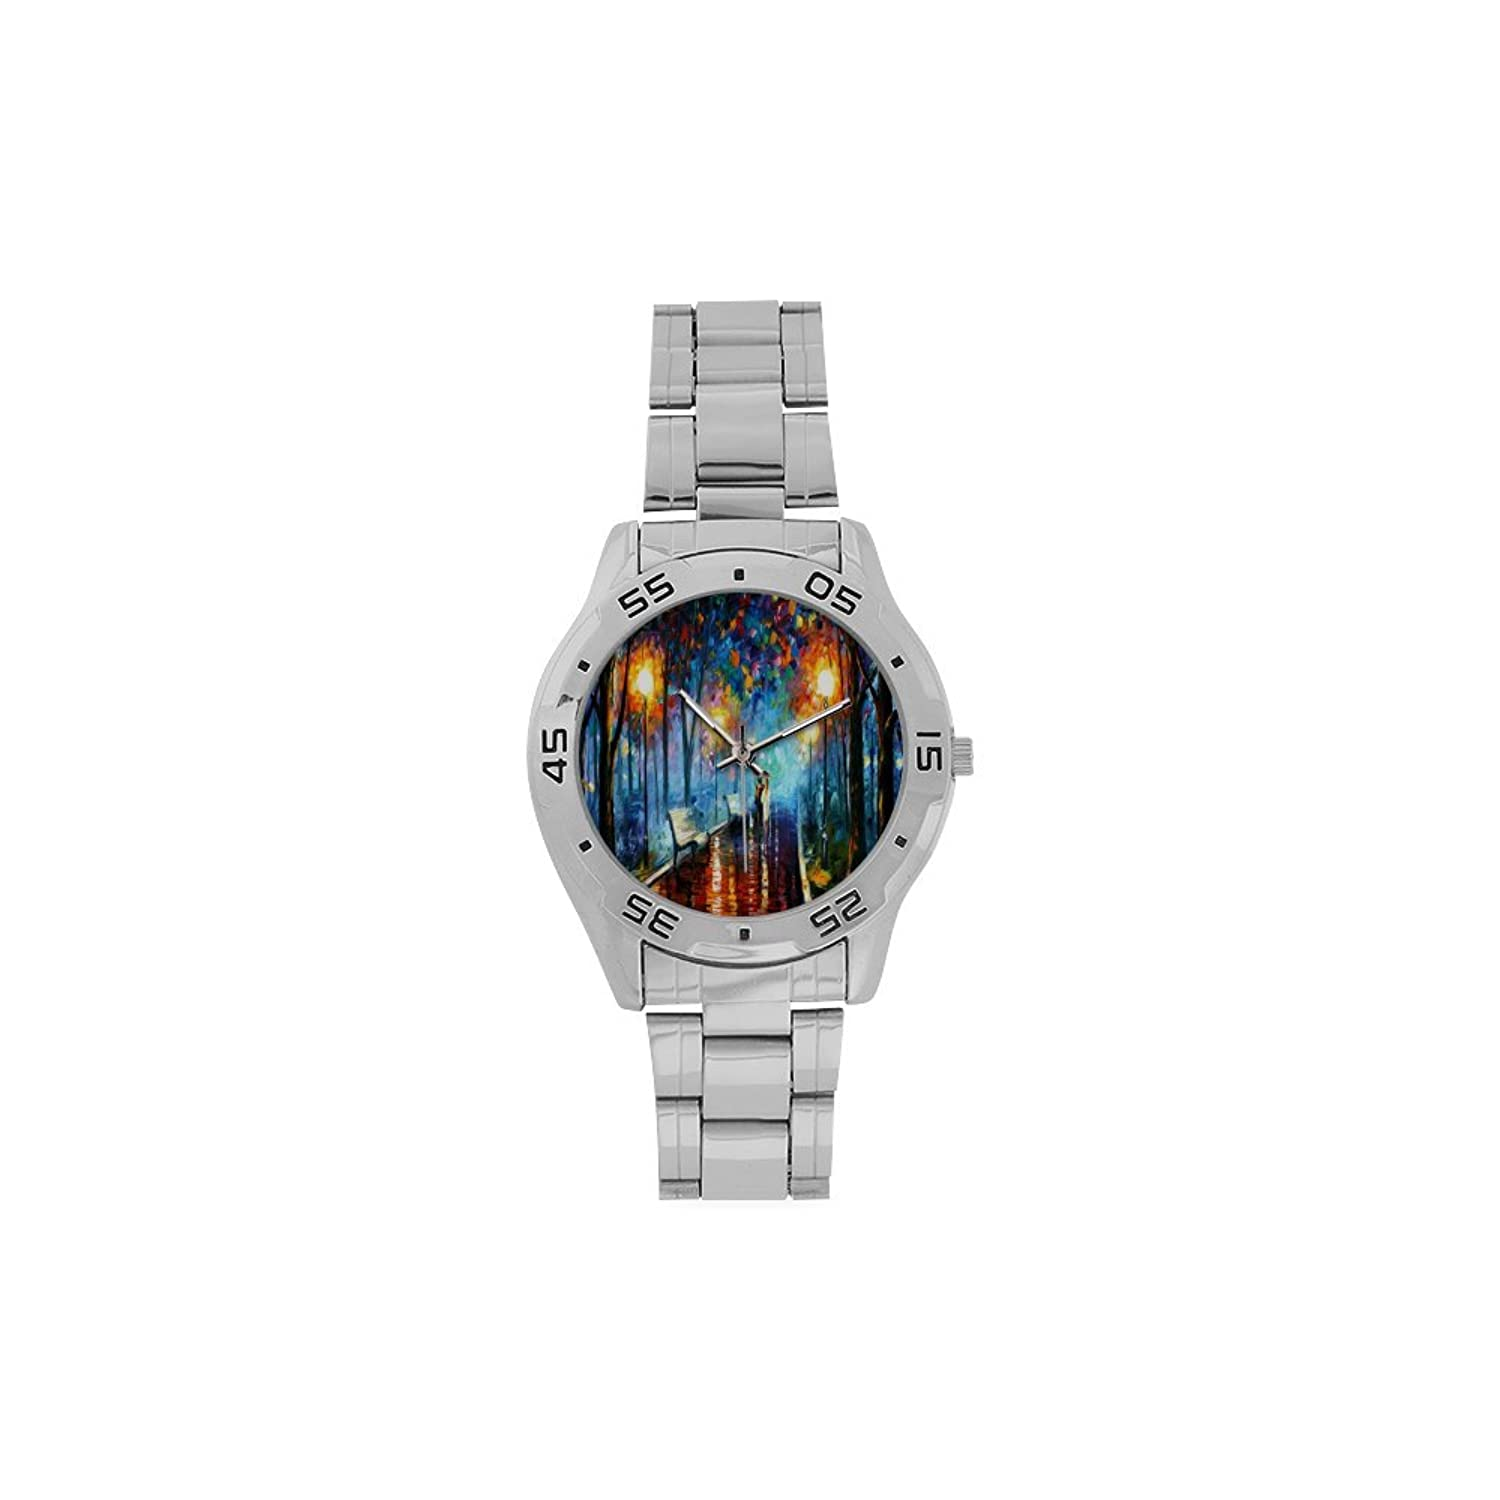 Fathers/Boyfriends Gifts Vincent Van Gogh Paintings Men's Stainless Steel Analog Watch